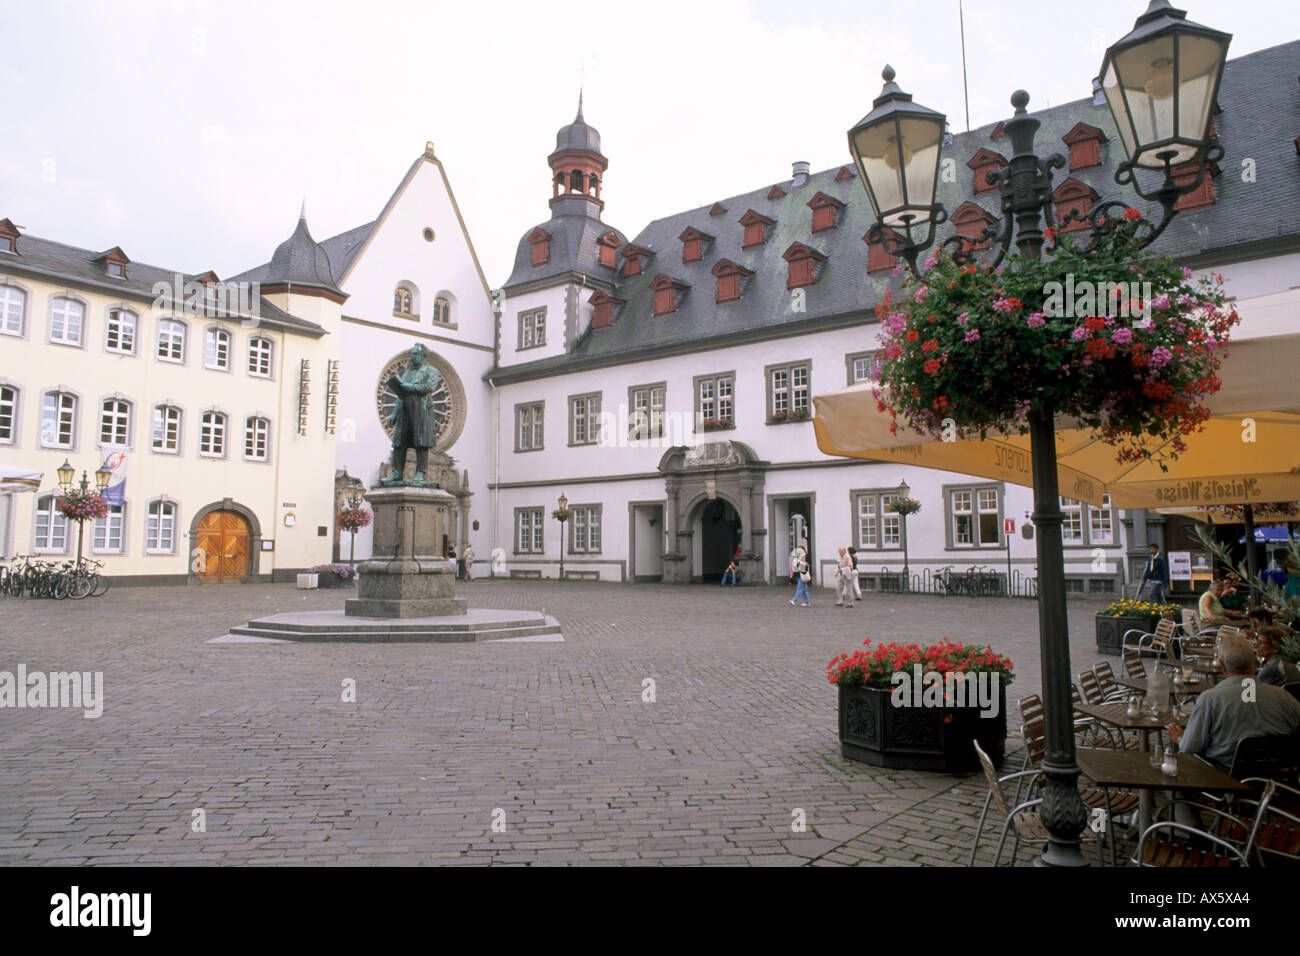 germany koblenz old town center with buildings and statue stock photo royalty free image. Black Bedroom Furniture Sets. Home Design Ideas